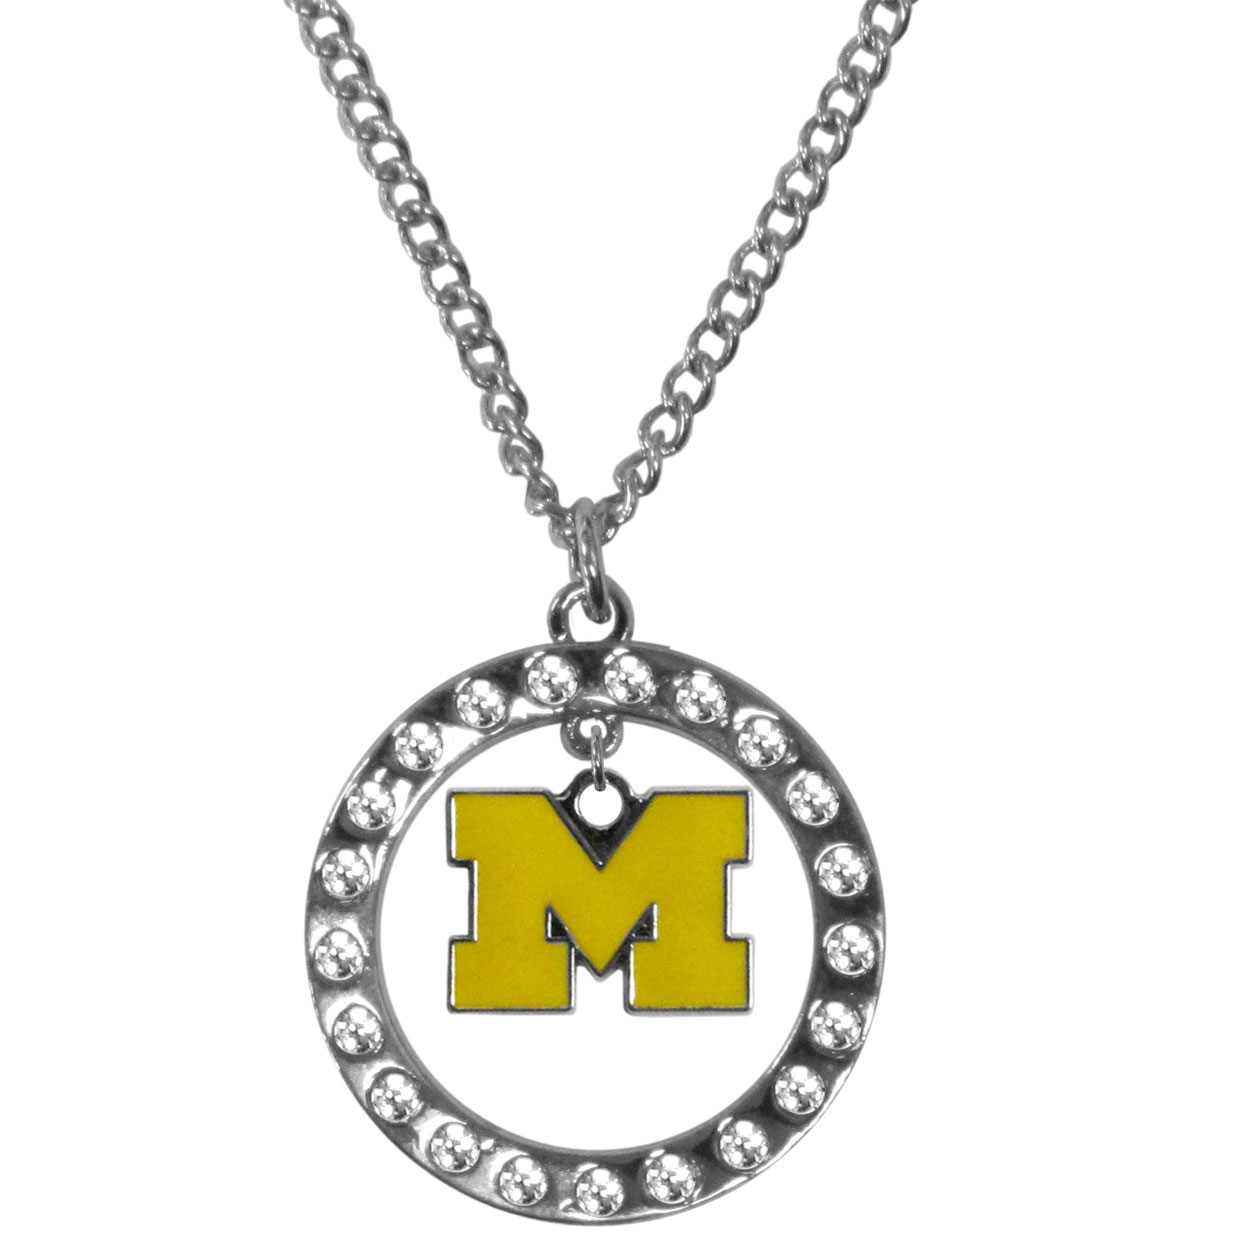 Michigan Wolverines Rhinestone Hoop Necklaces - Our Michigan Wolverines rhinestone hoop necklace comes on an 18 inch chain and features a hoop covered in rhinestones with a high polish chrome finish and a cast and enameled team charm dangling in the center.